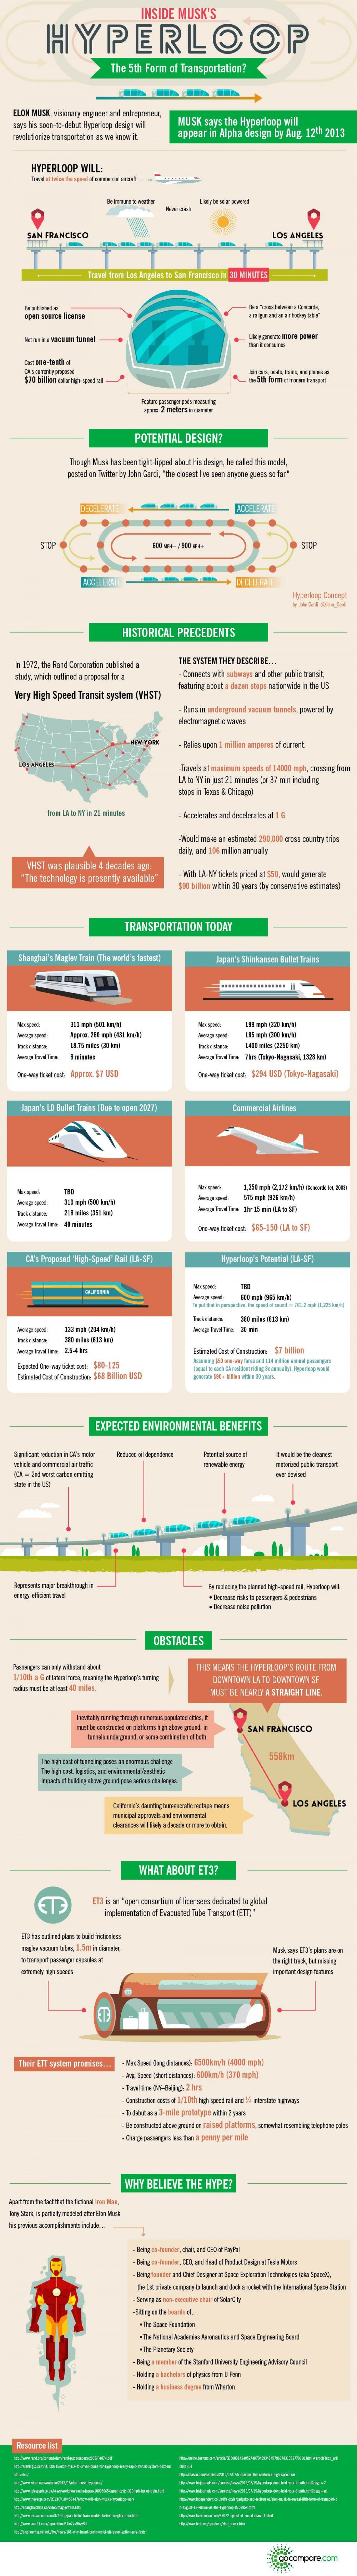 Inside Musk's Hyperloop Infographic